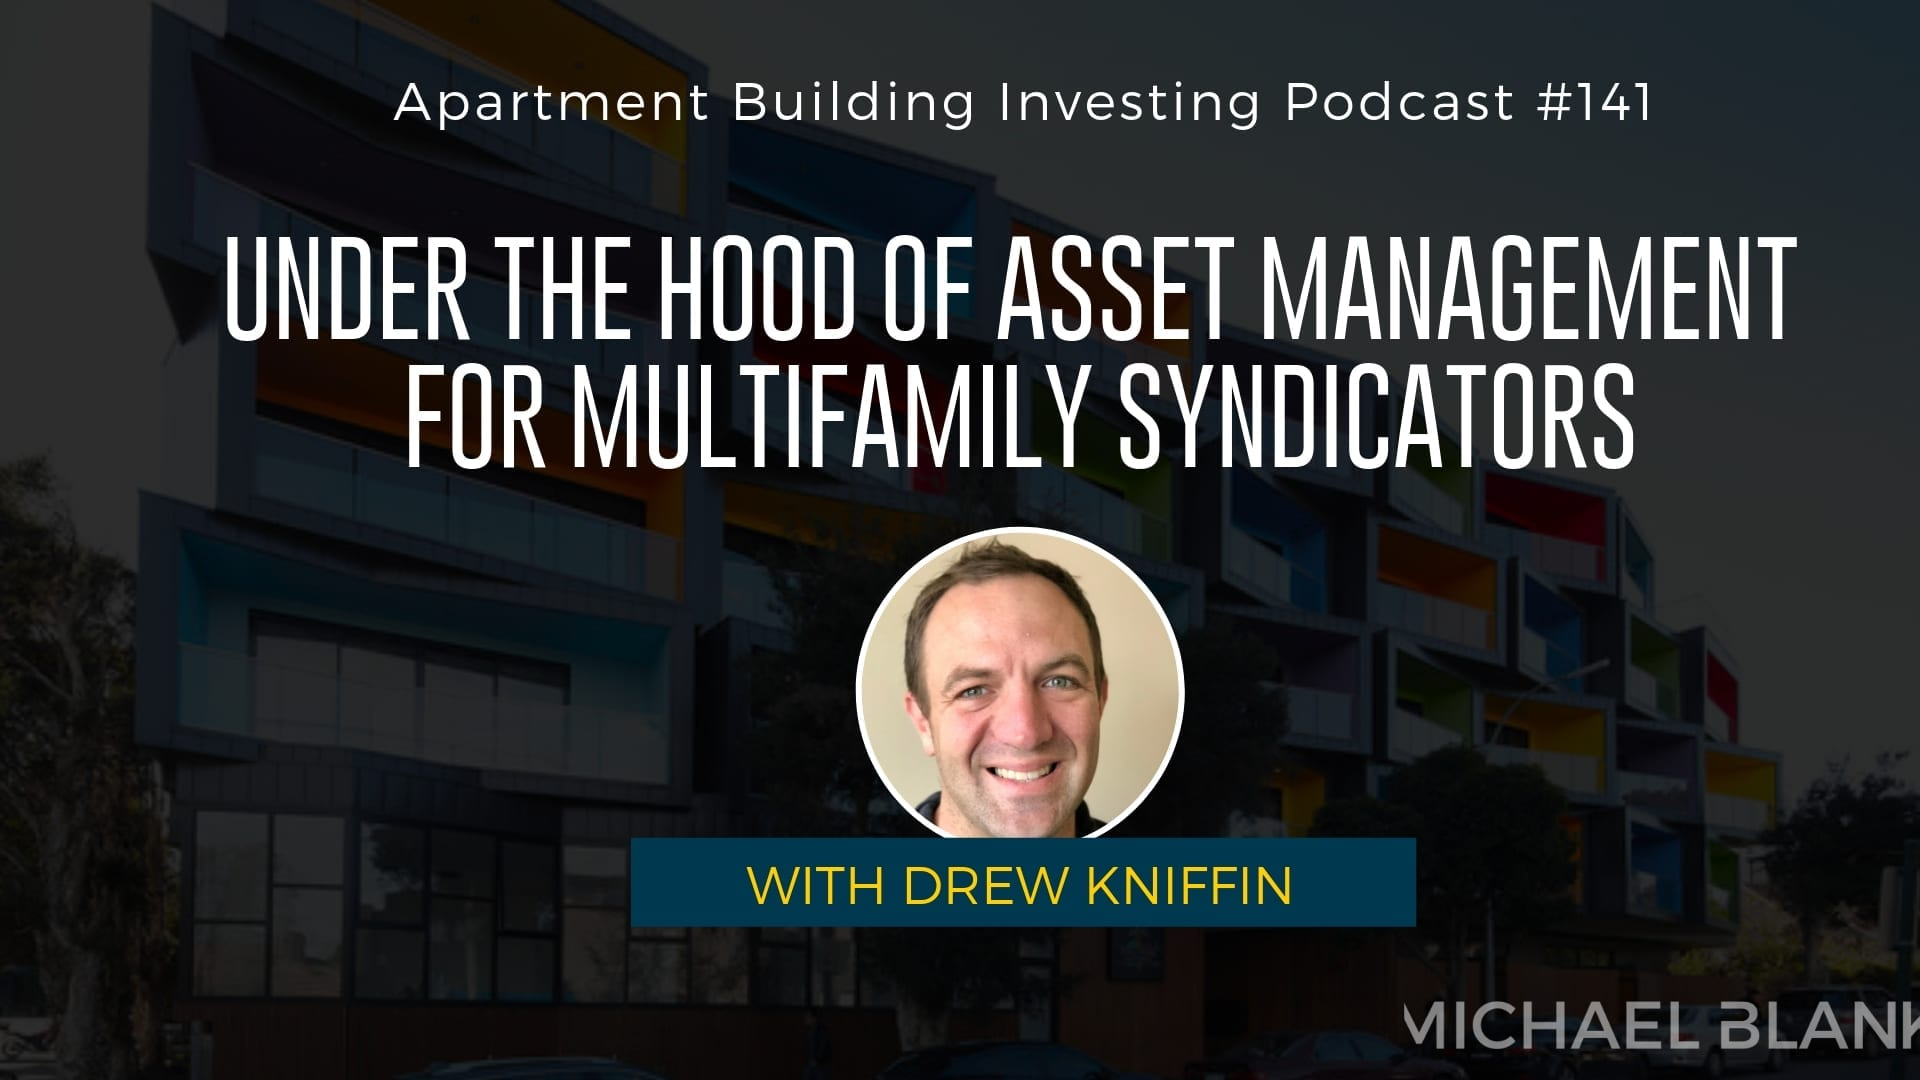 MB 141: Under the Hood of Asset Management for Multifamily Syndicators – With Drew Kniffin